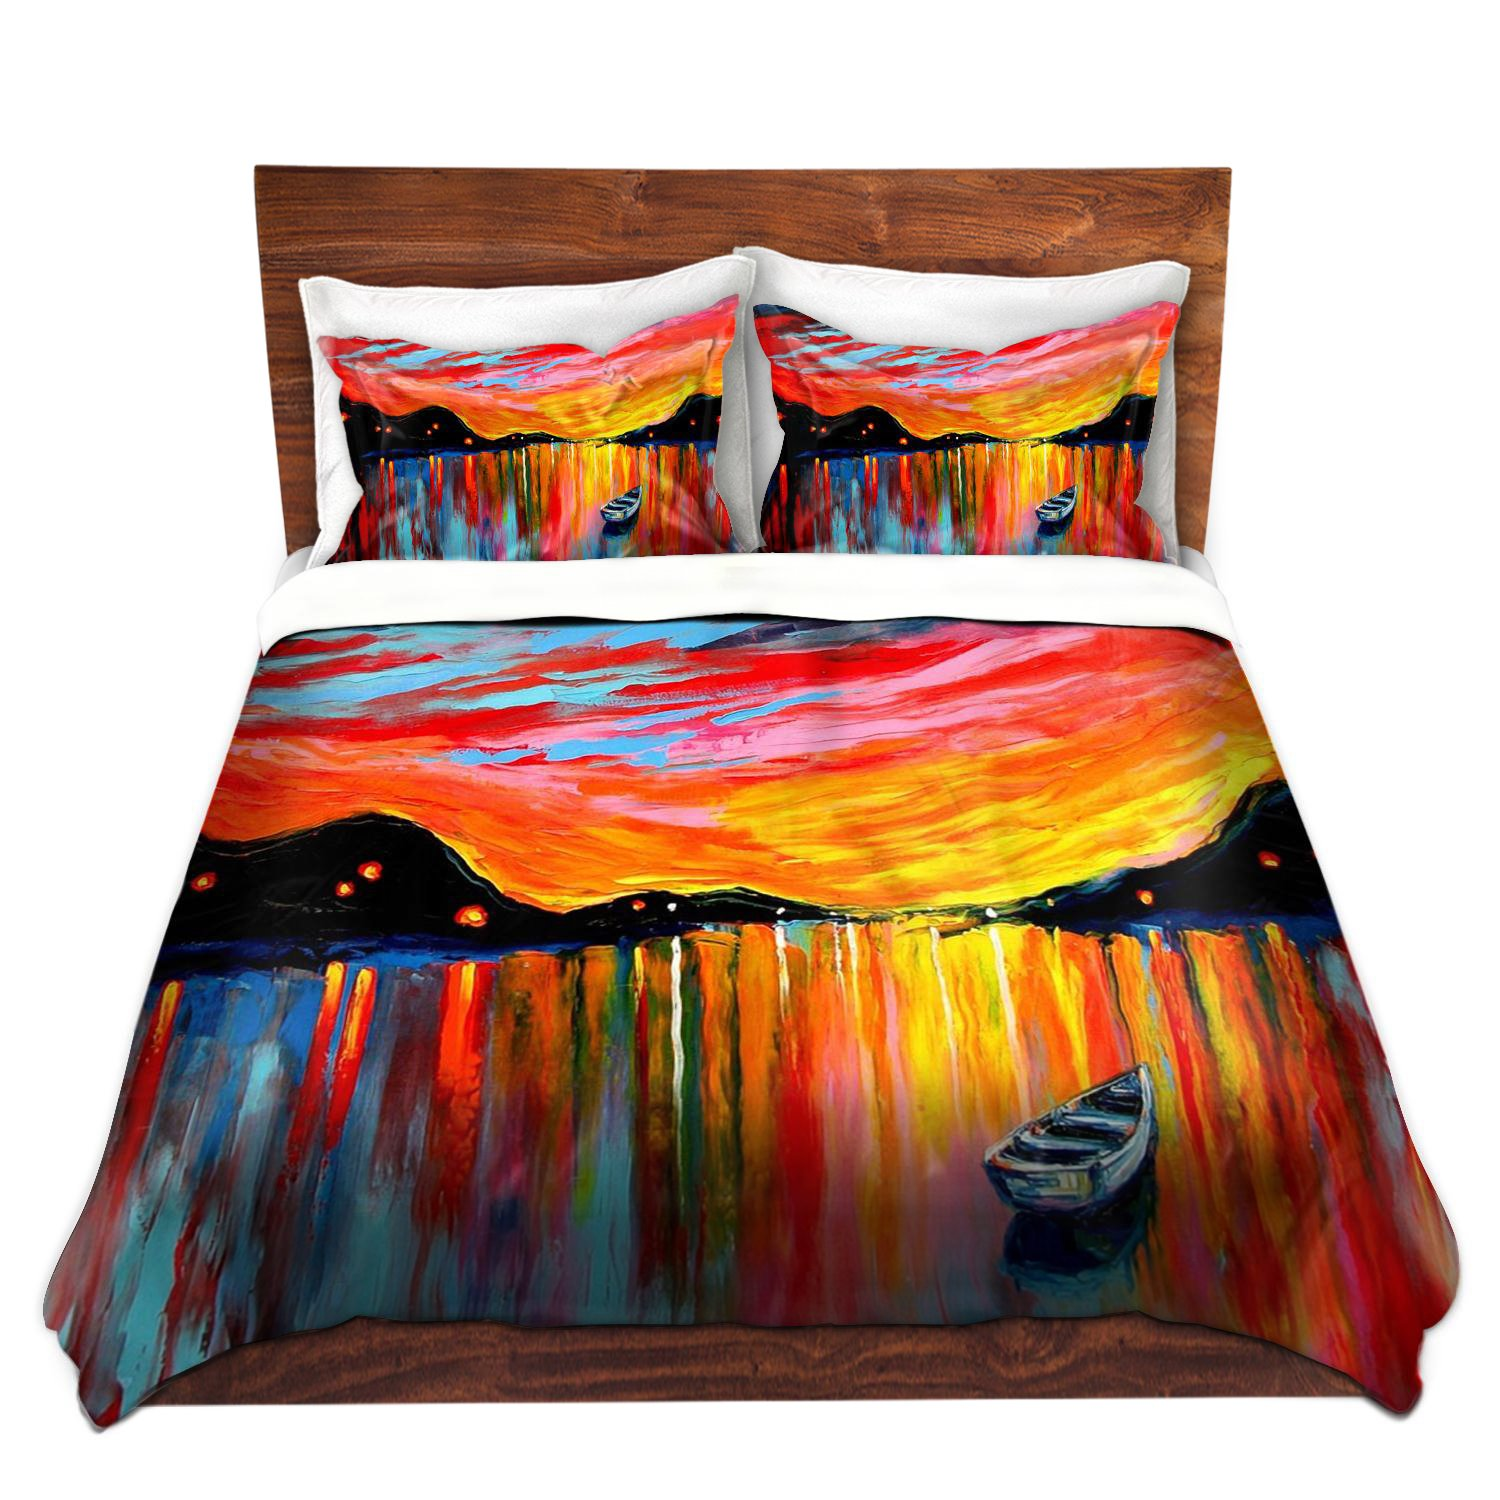 DiaNoche Designs Ann Unique Home Decor Bedding Ideas Red Sky At Night Cover, 7 Queen Duvet Sham Set